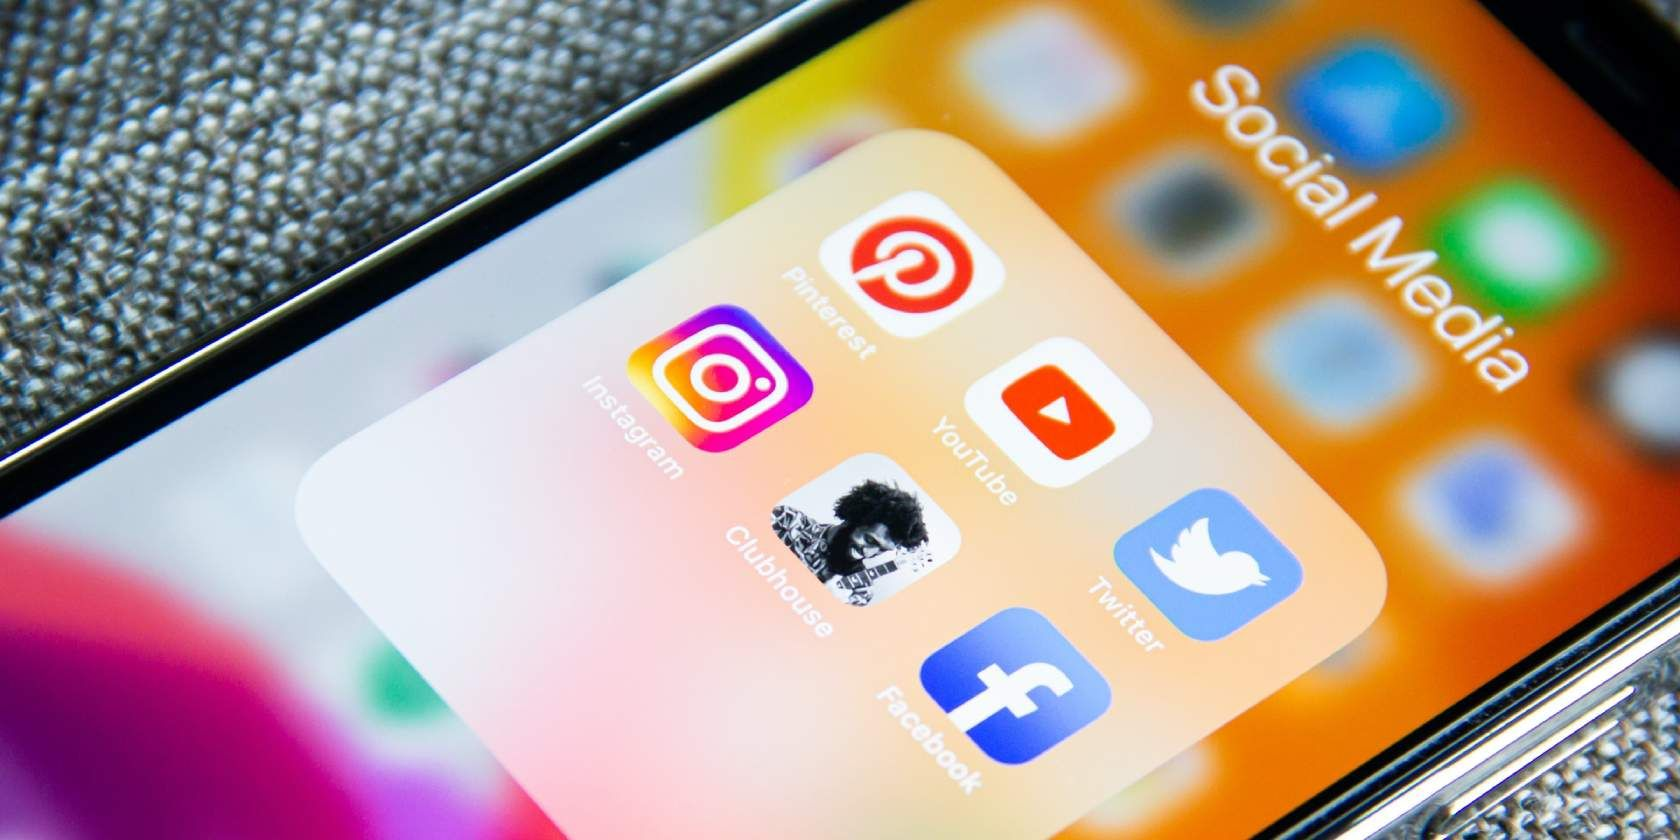 5 Open Source Alternatives to Social Networks That Preserve Your Privacy